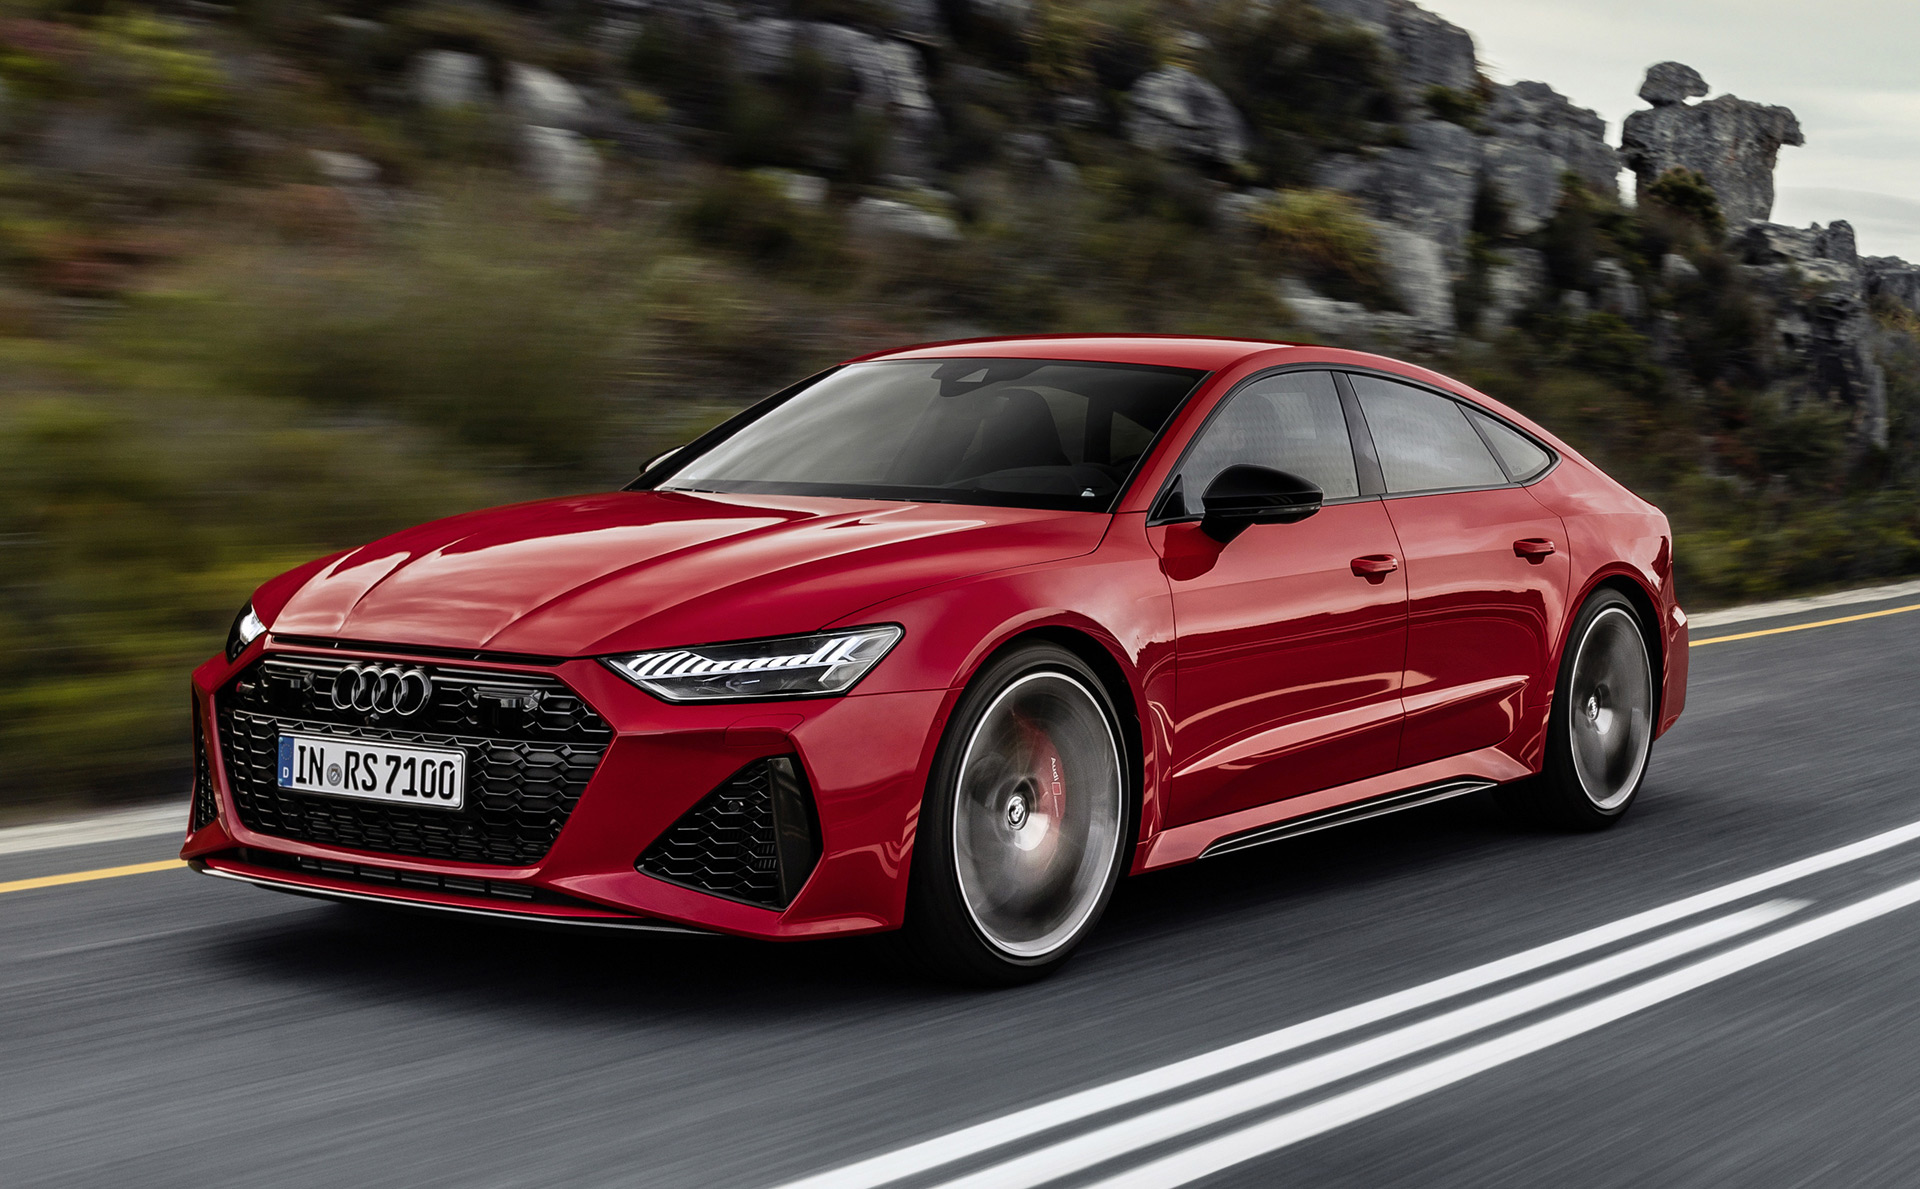 The 114 995 2021 Audi Rs 7 Will Take You To 190 Mph In Style